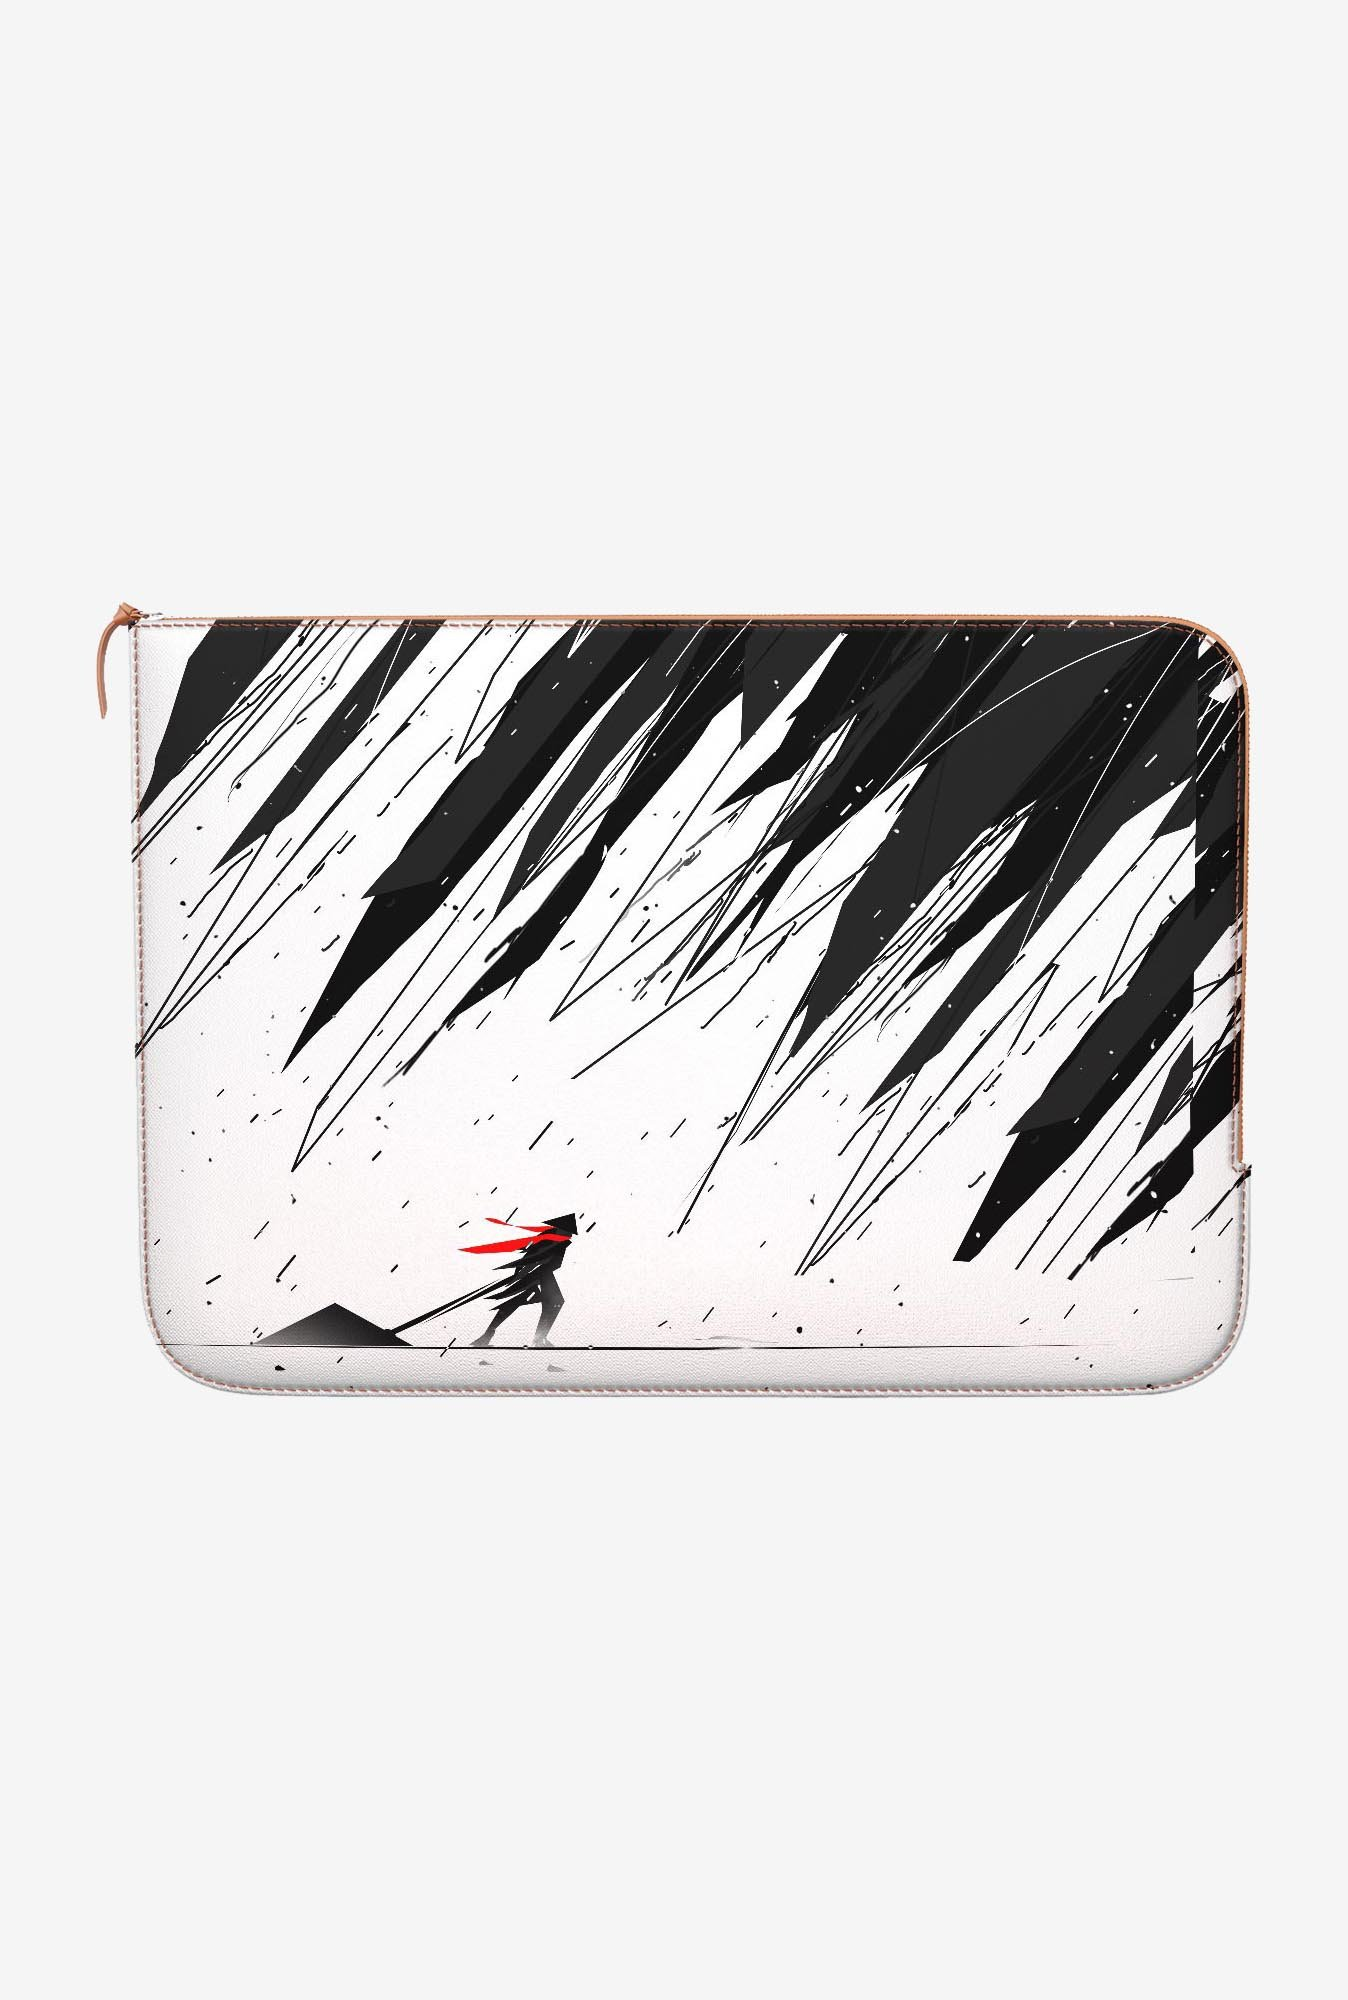 DailyObjects Geometric Storm MacBook 12 Zippered Sleeve